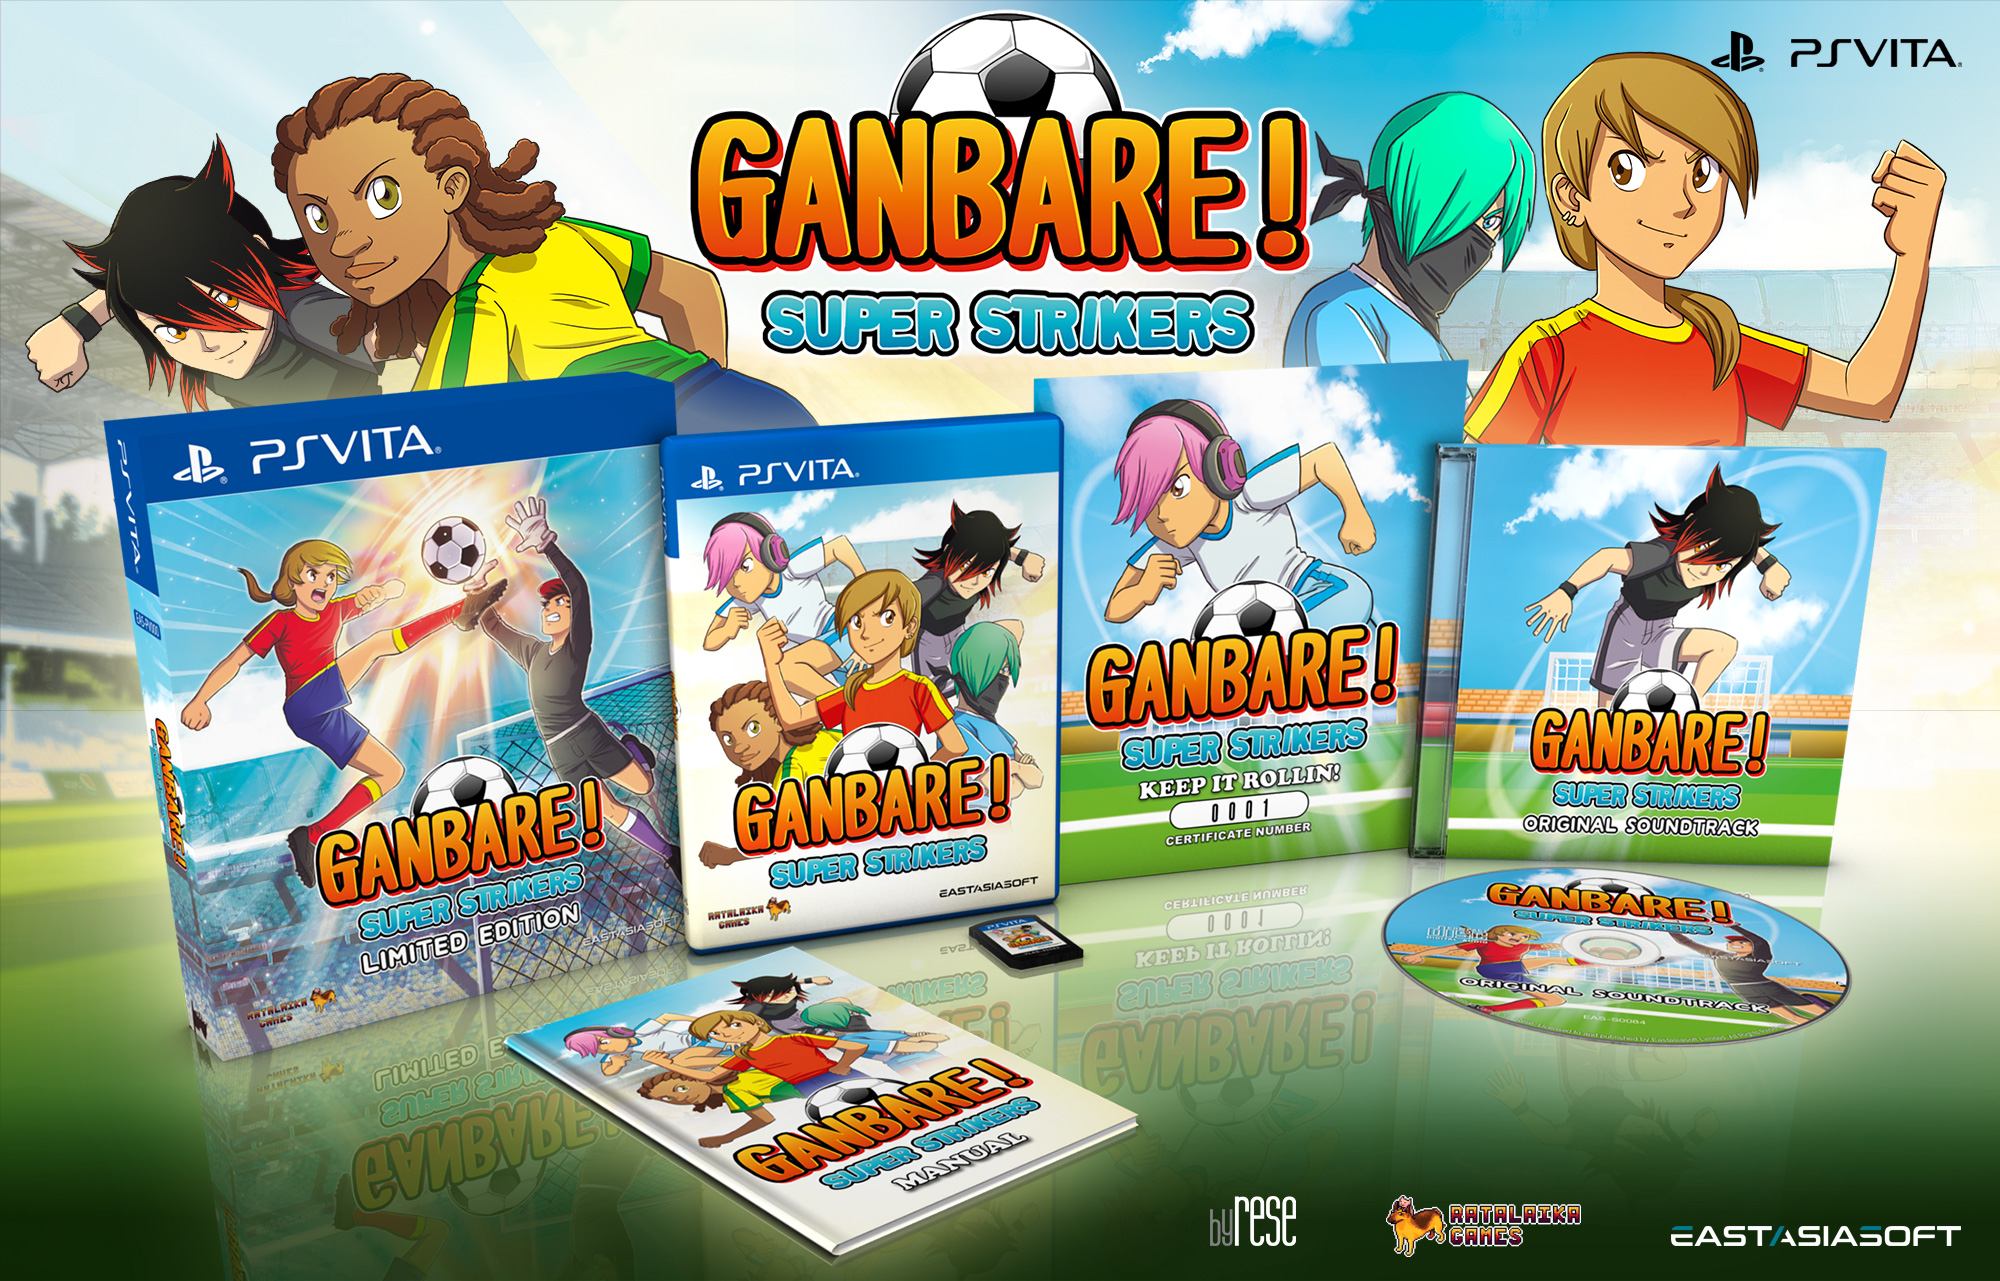 Ganbare Super Strikers Limited Edition